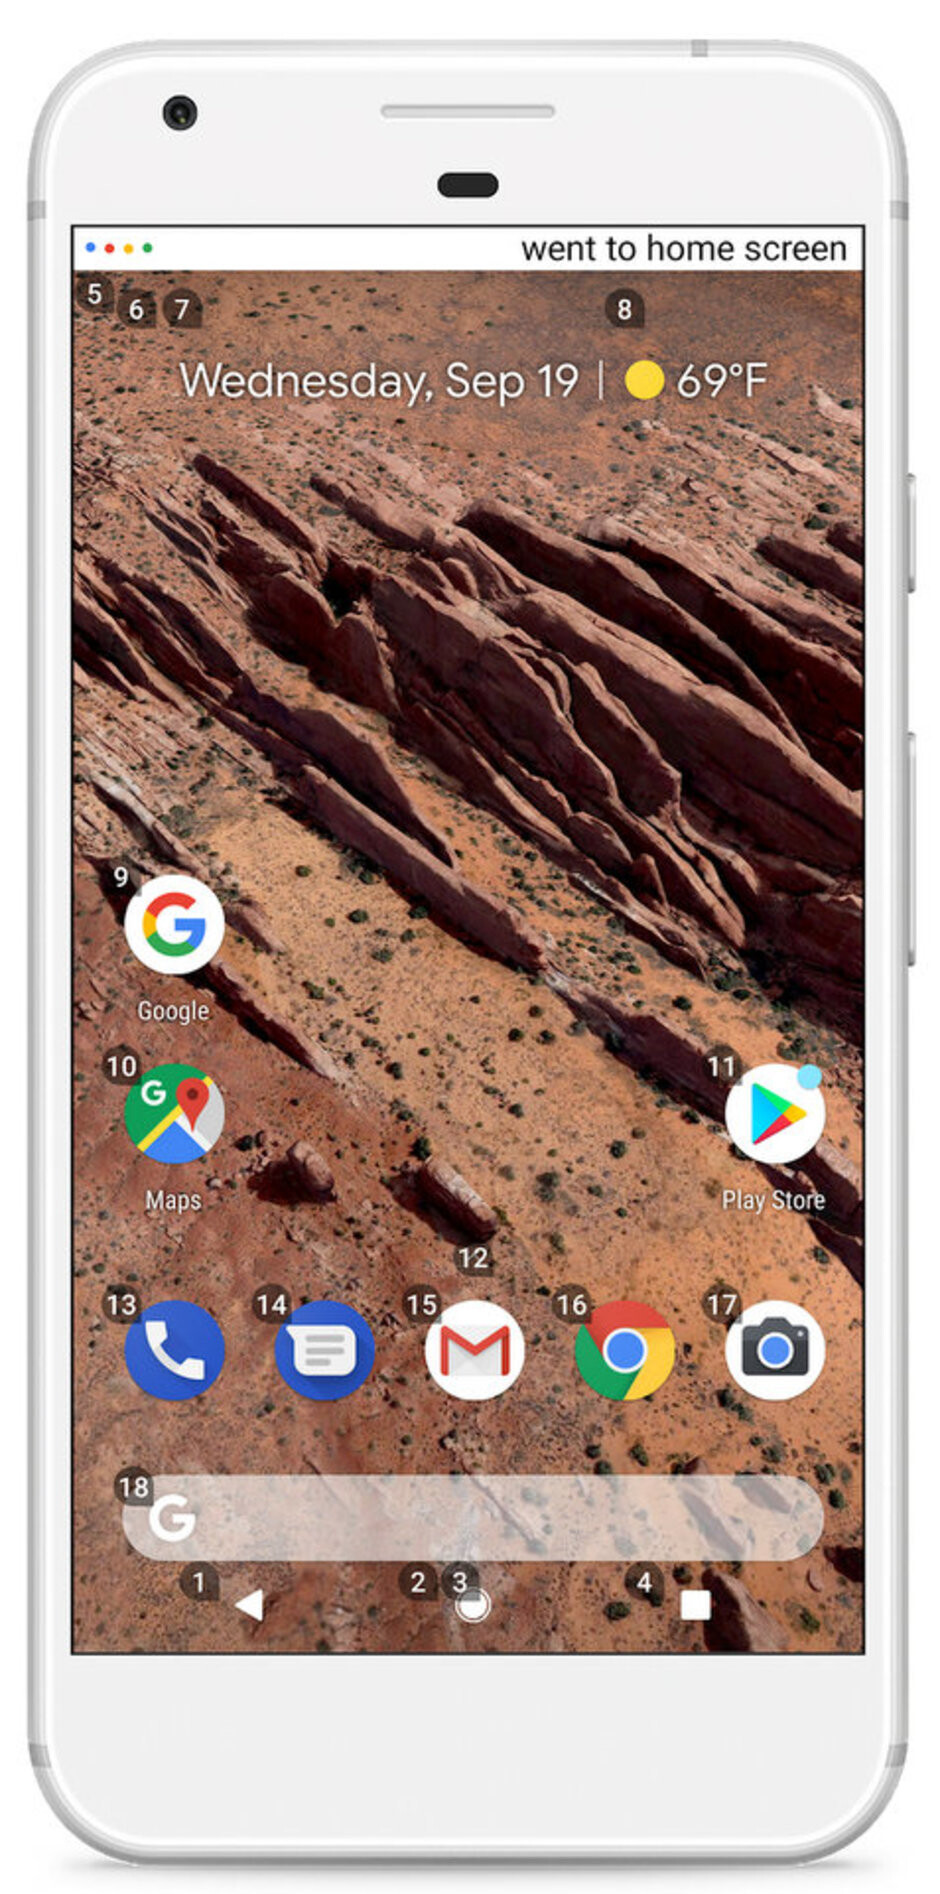 Android homepage using Voice Access - Google launches Voice Access app, promises Android users hands-free control